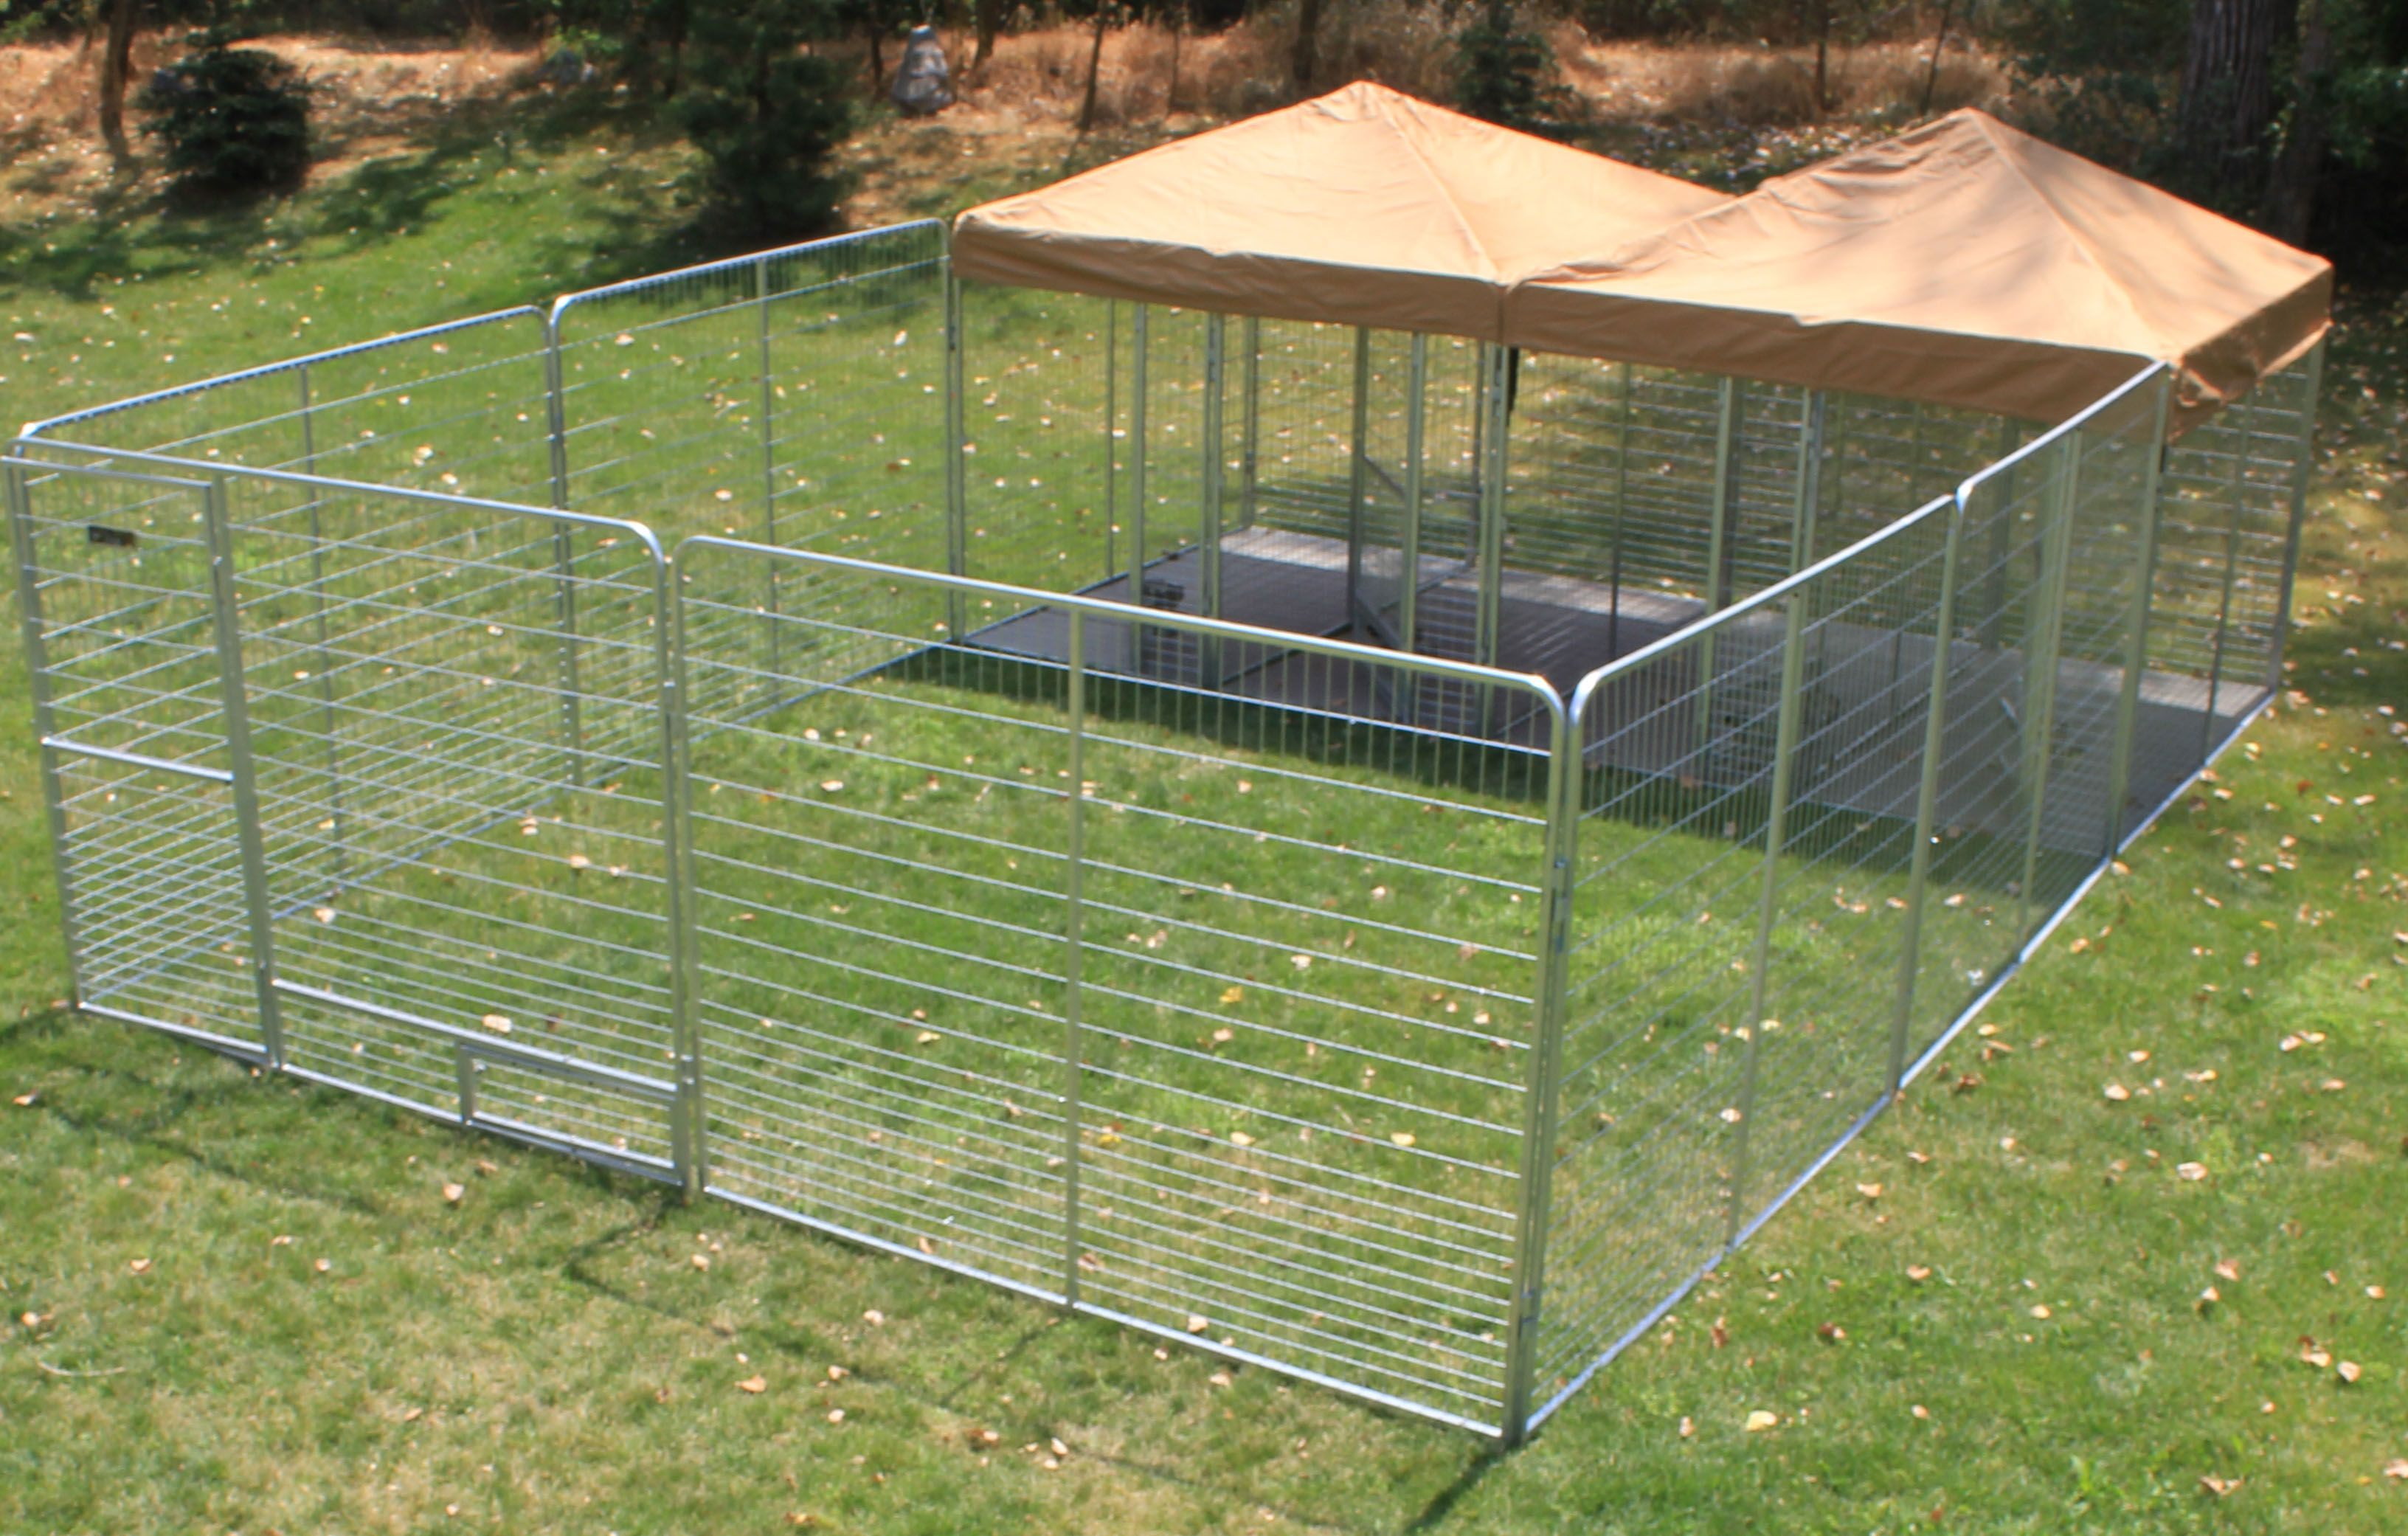 4x8 Multiple X 4 With 16x16 Play Zone For The Dogs To Play